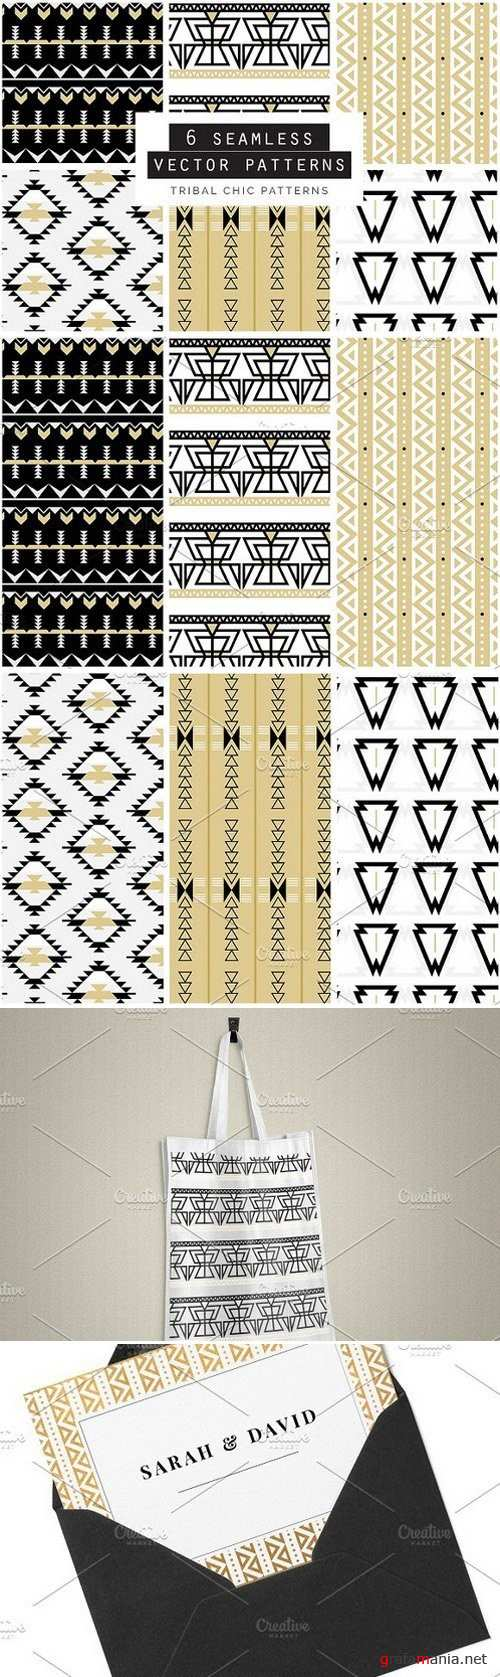 Tribal Seamless Vector Patterns - 615545